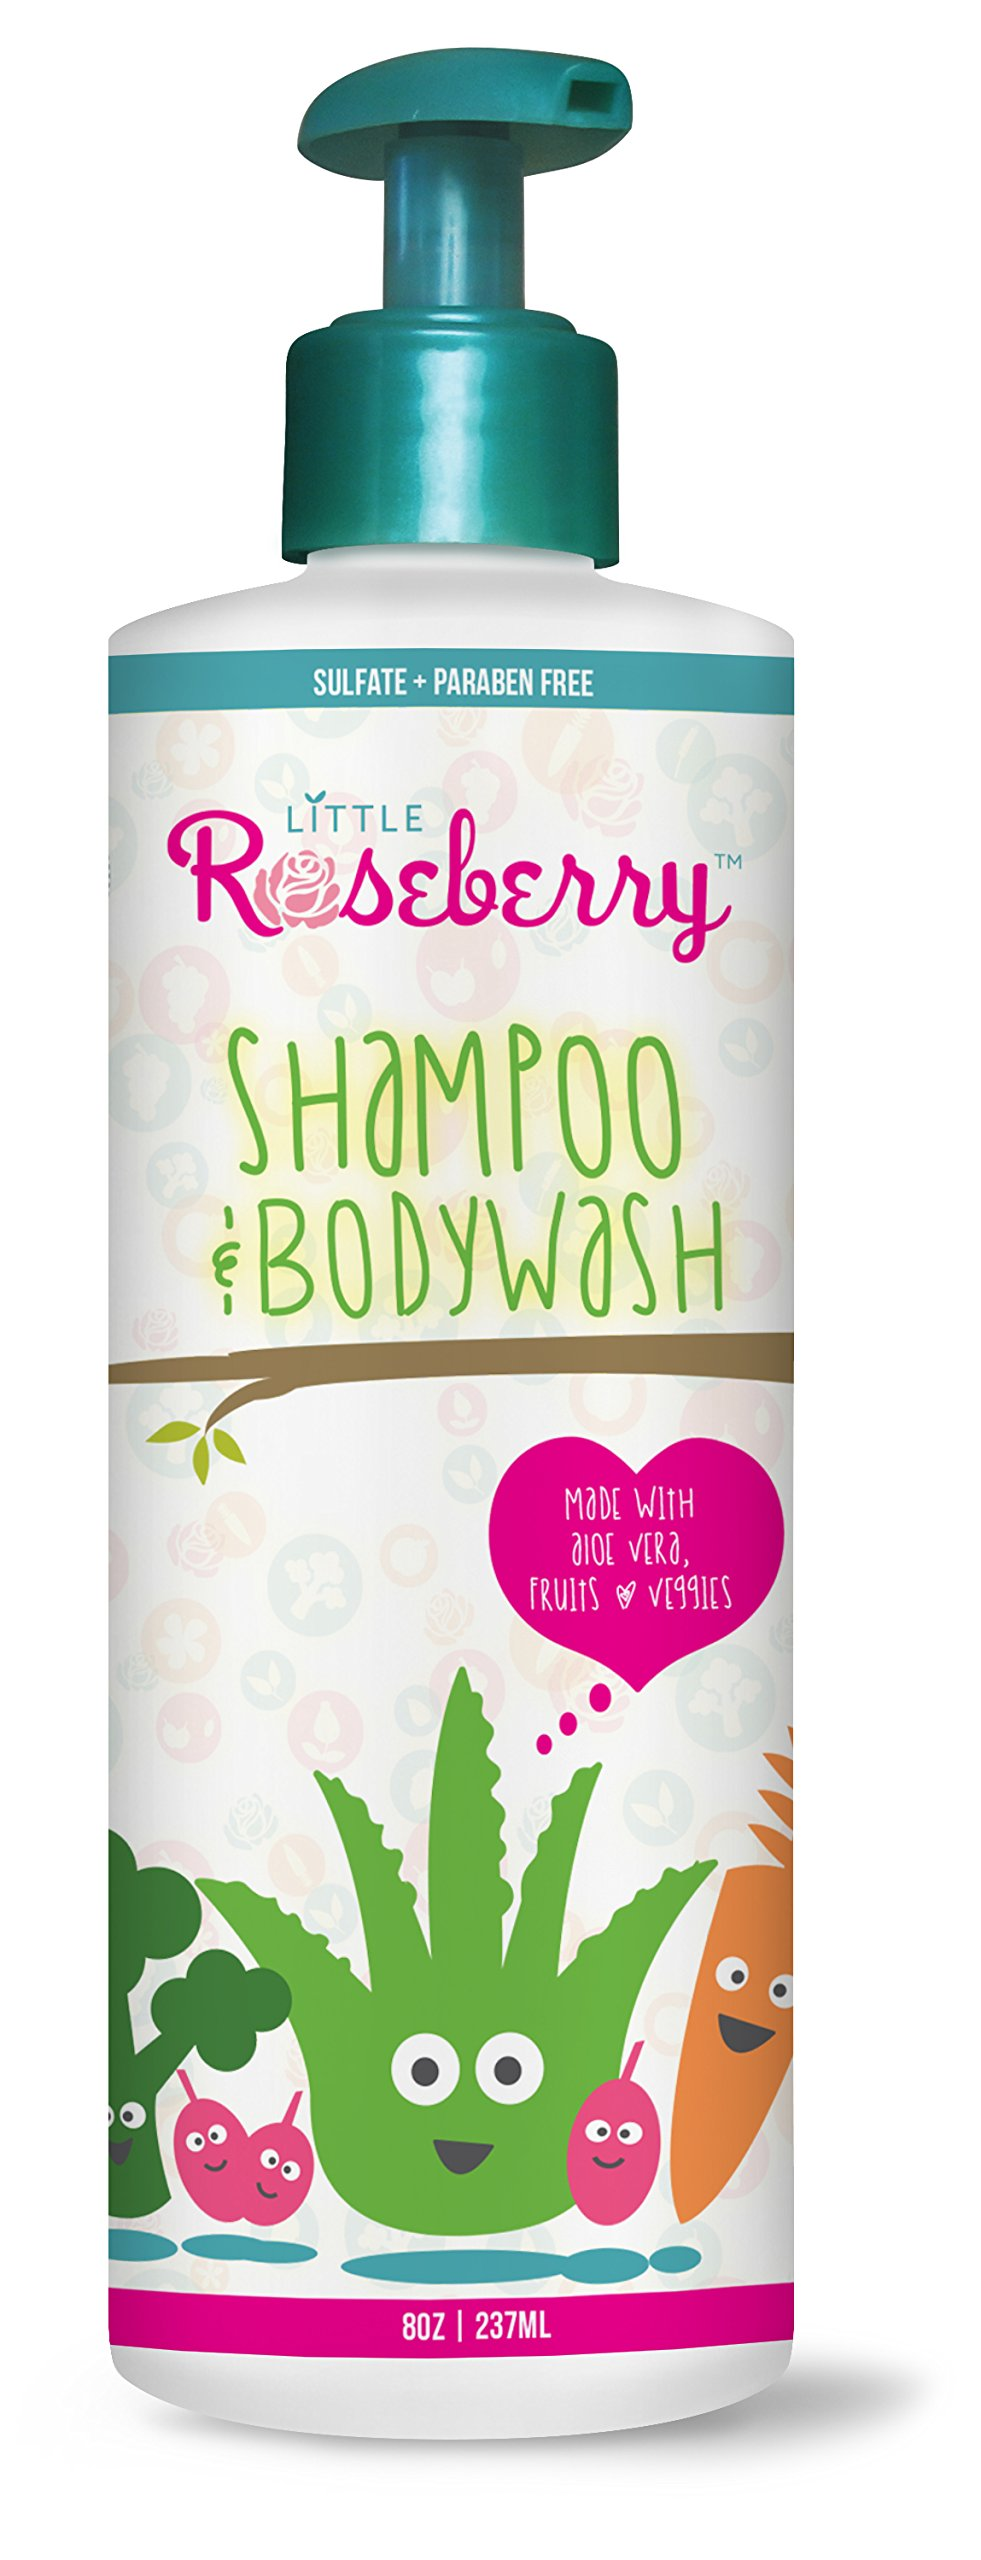 Kids Shampoo and Body Wash | Organic Aloe Formula for kids and Babies with Normal to Sensitive Skin| Eczema Friendly | Paraben, Sulfate & fragrance Free | Made in USA by a Cosmetologist